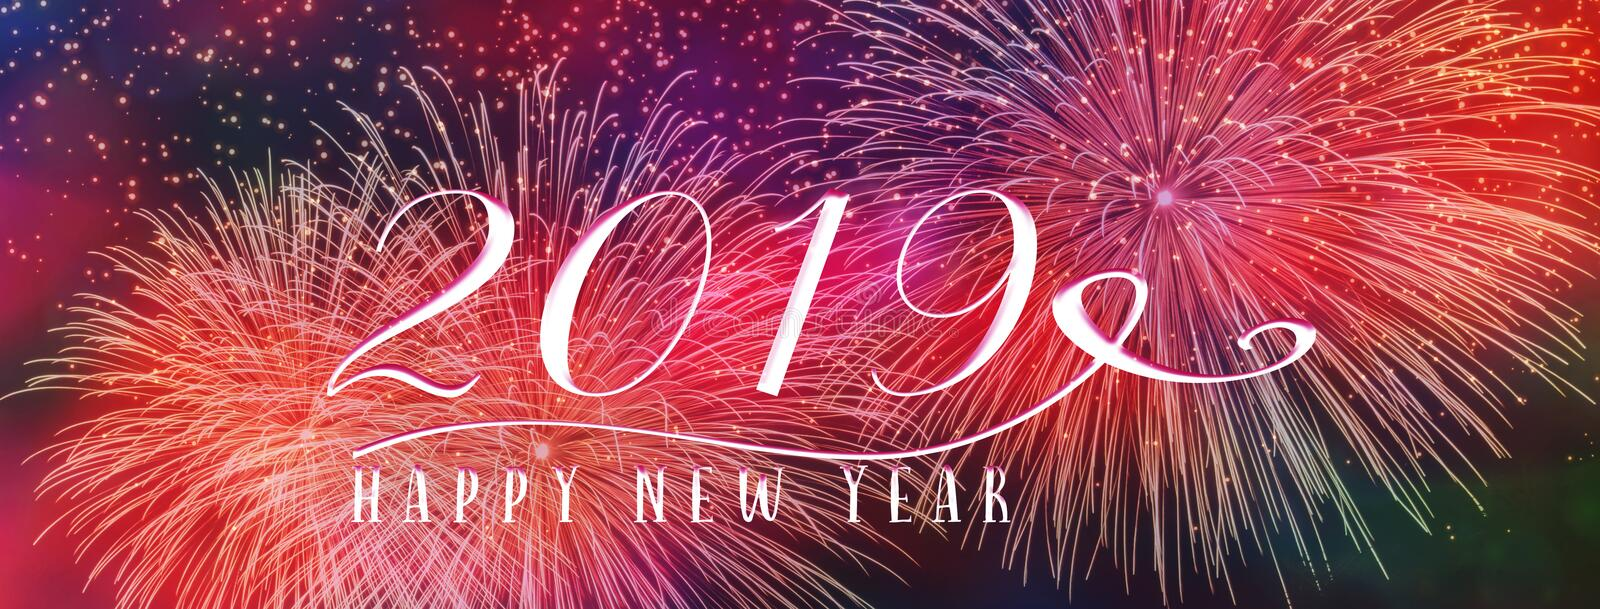 New Year Holiday 2019 background banner with fireworks and seasonal quote. Scales to fit a facebook header. Perfect for social media influencers and bloggers stock photography